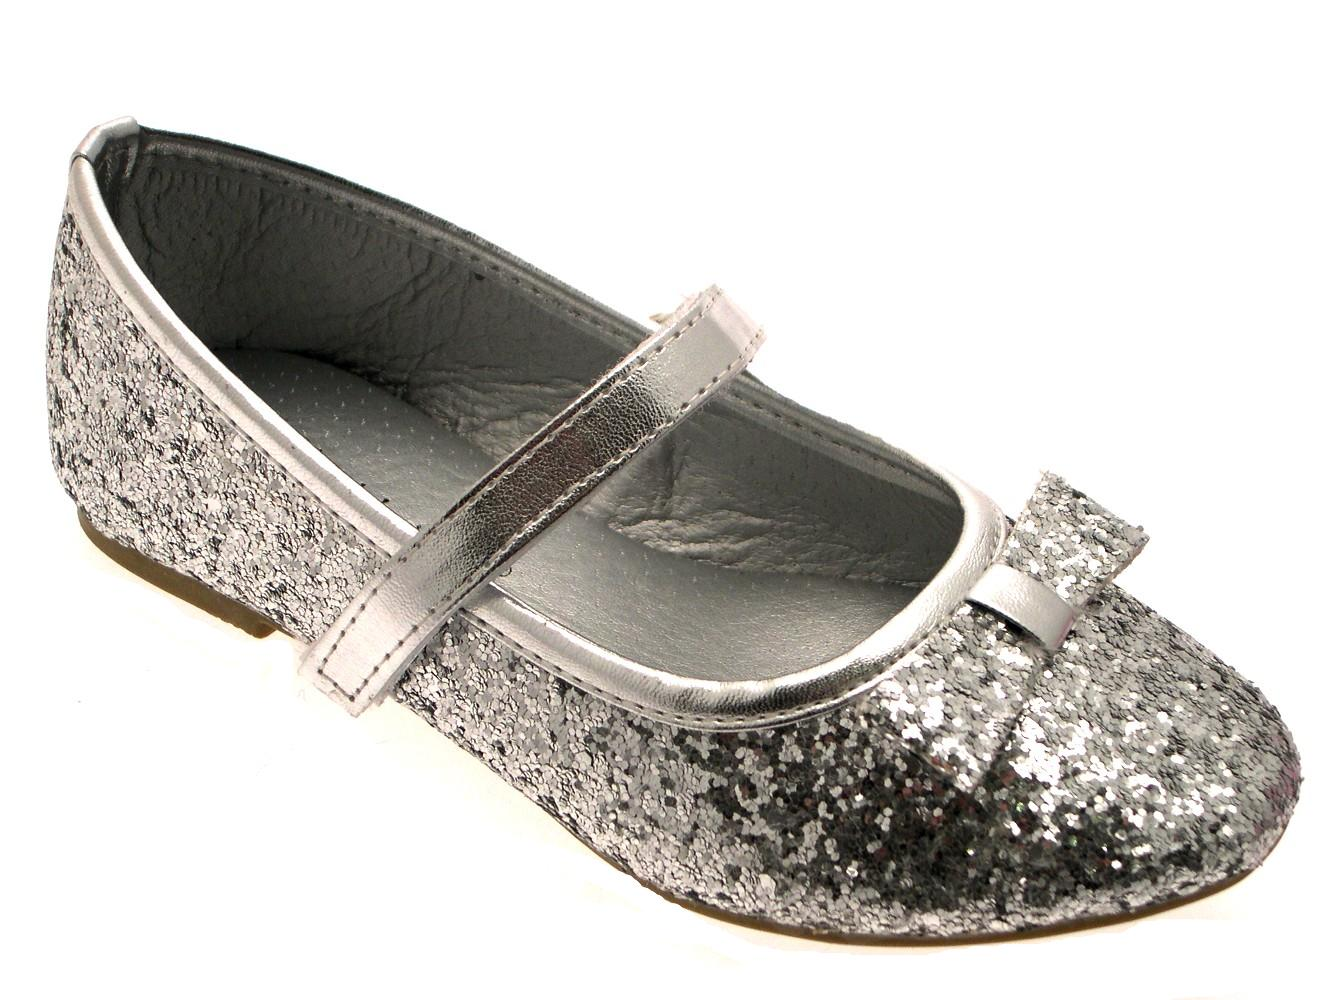 Office Supplies Office Electronics Walmart for Business. Video Games. Certified Refurbished. Girls' Ballet Shoes. Clothing. Shoes. Kids & Baby Shoes. Product - Girls Silver Leather One Piece Outsole Ballet Shoes Kids-4 Kids. Product Image. Price $ Product Title.